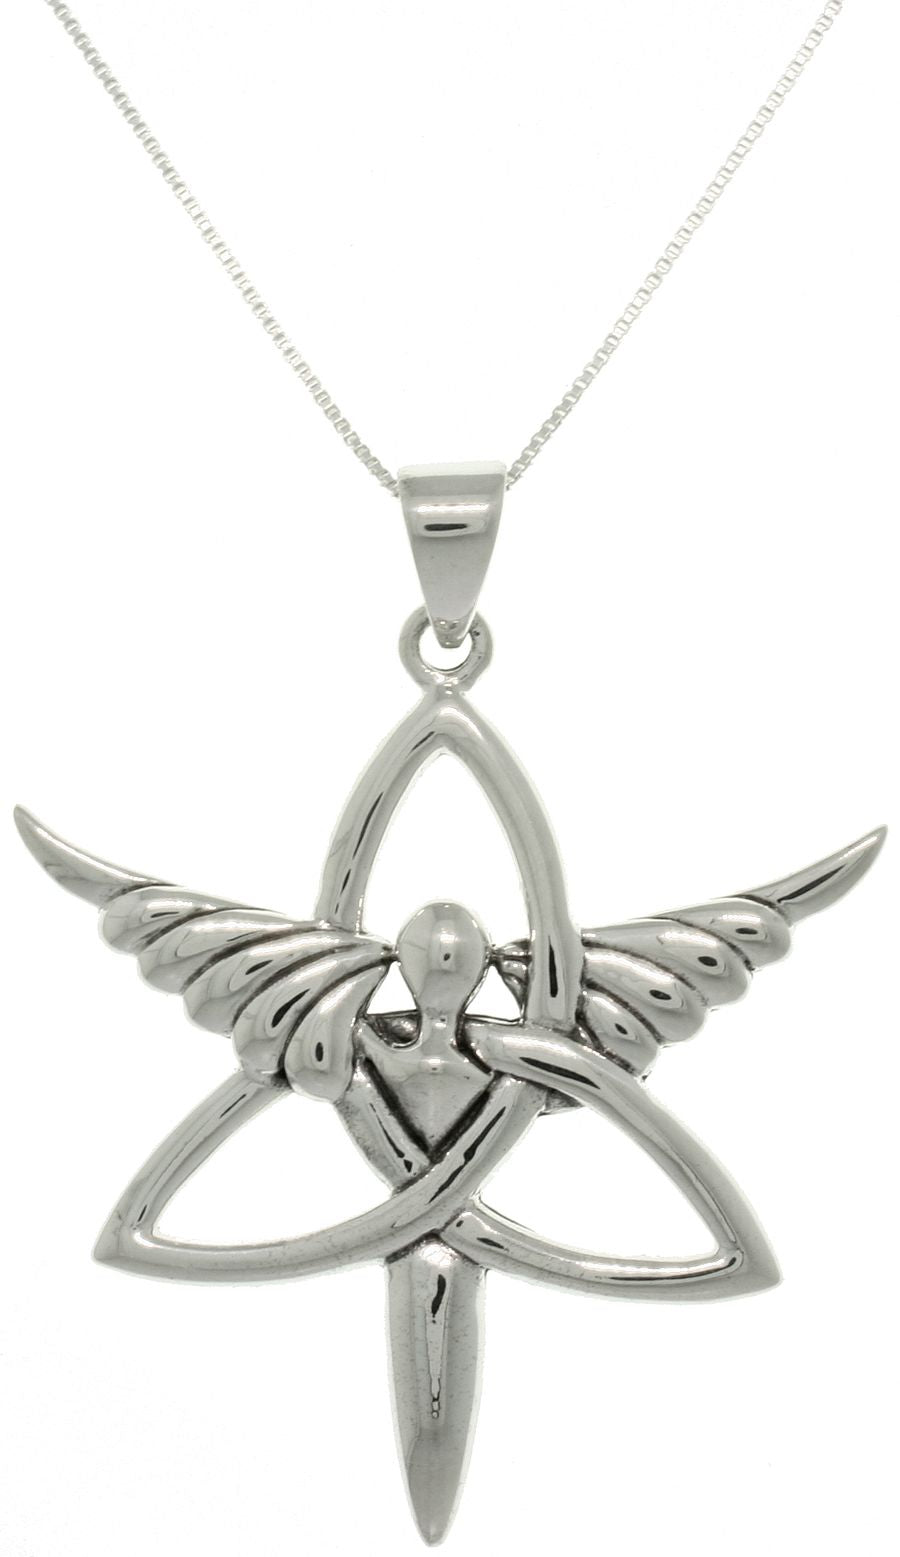 Jewelry Trends Sterling Silver Trinity Angel Celtic Knot Pendant on 18 inch Box Chain Necklace